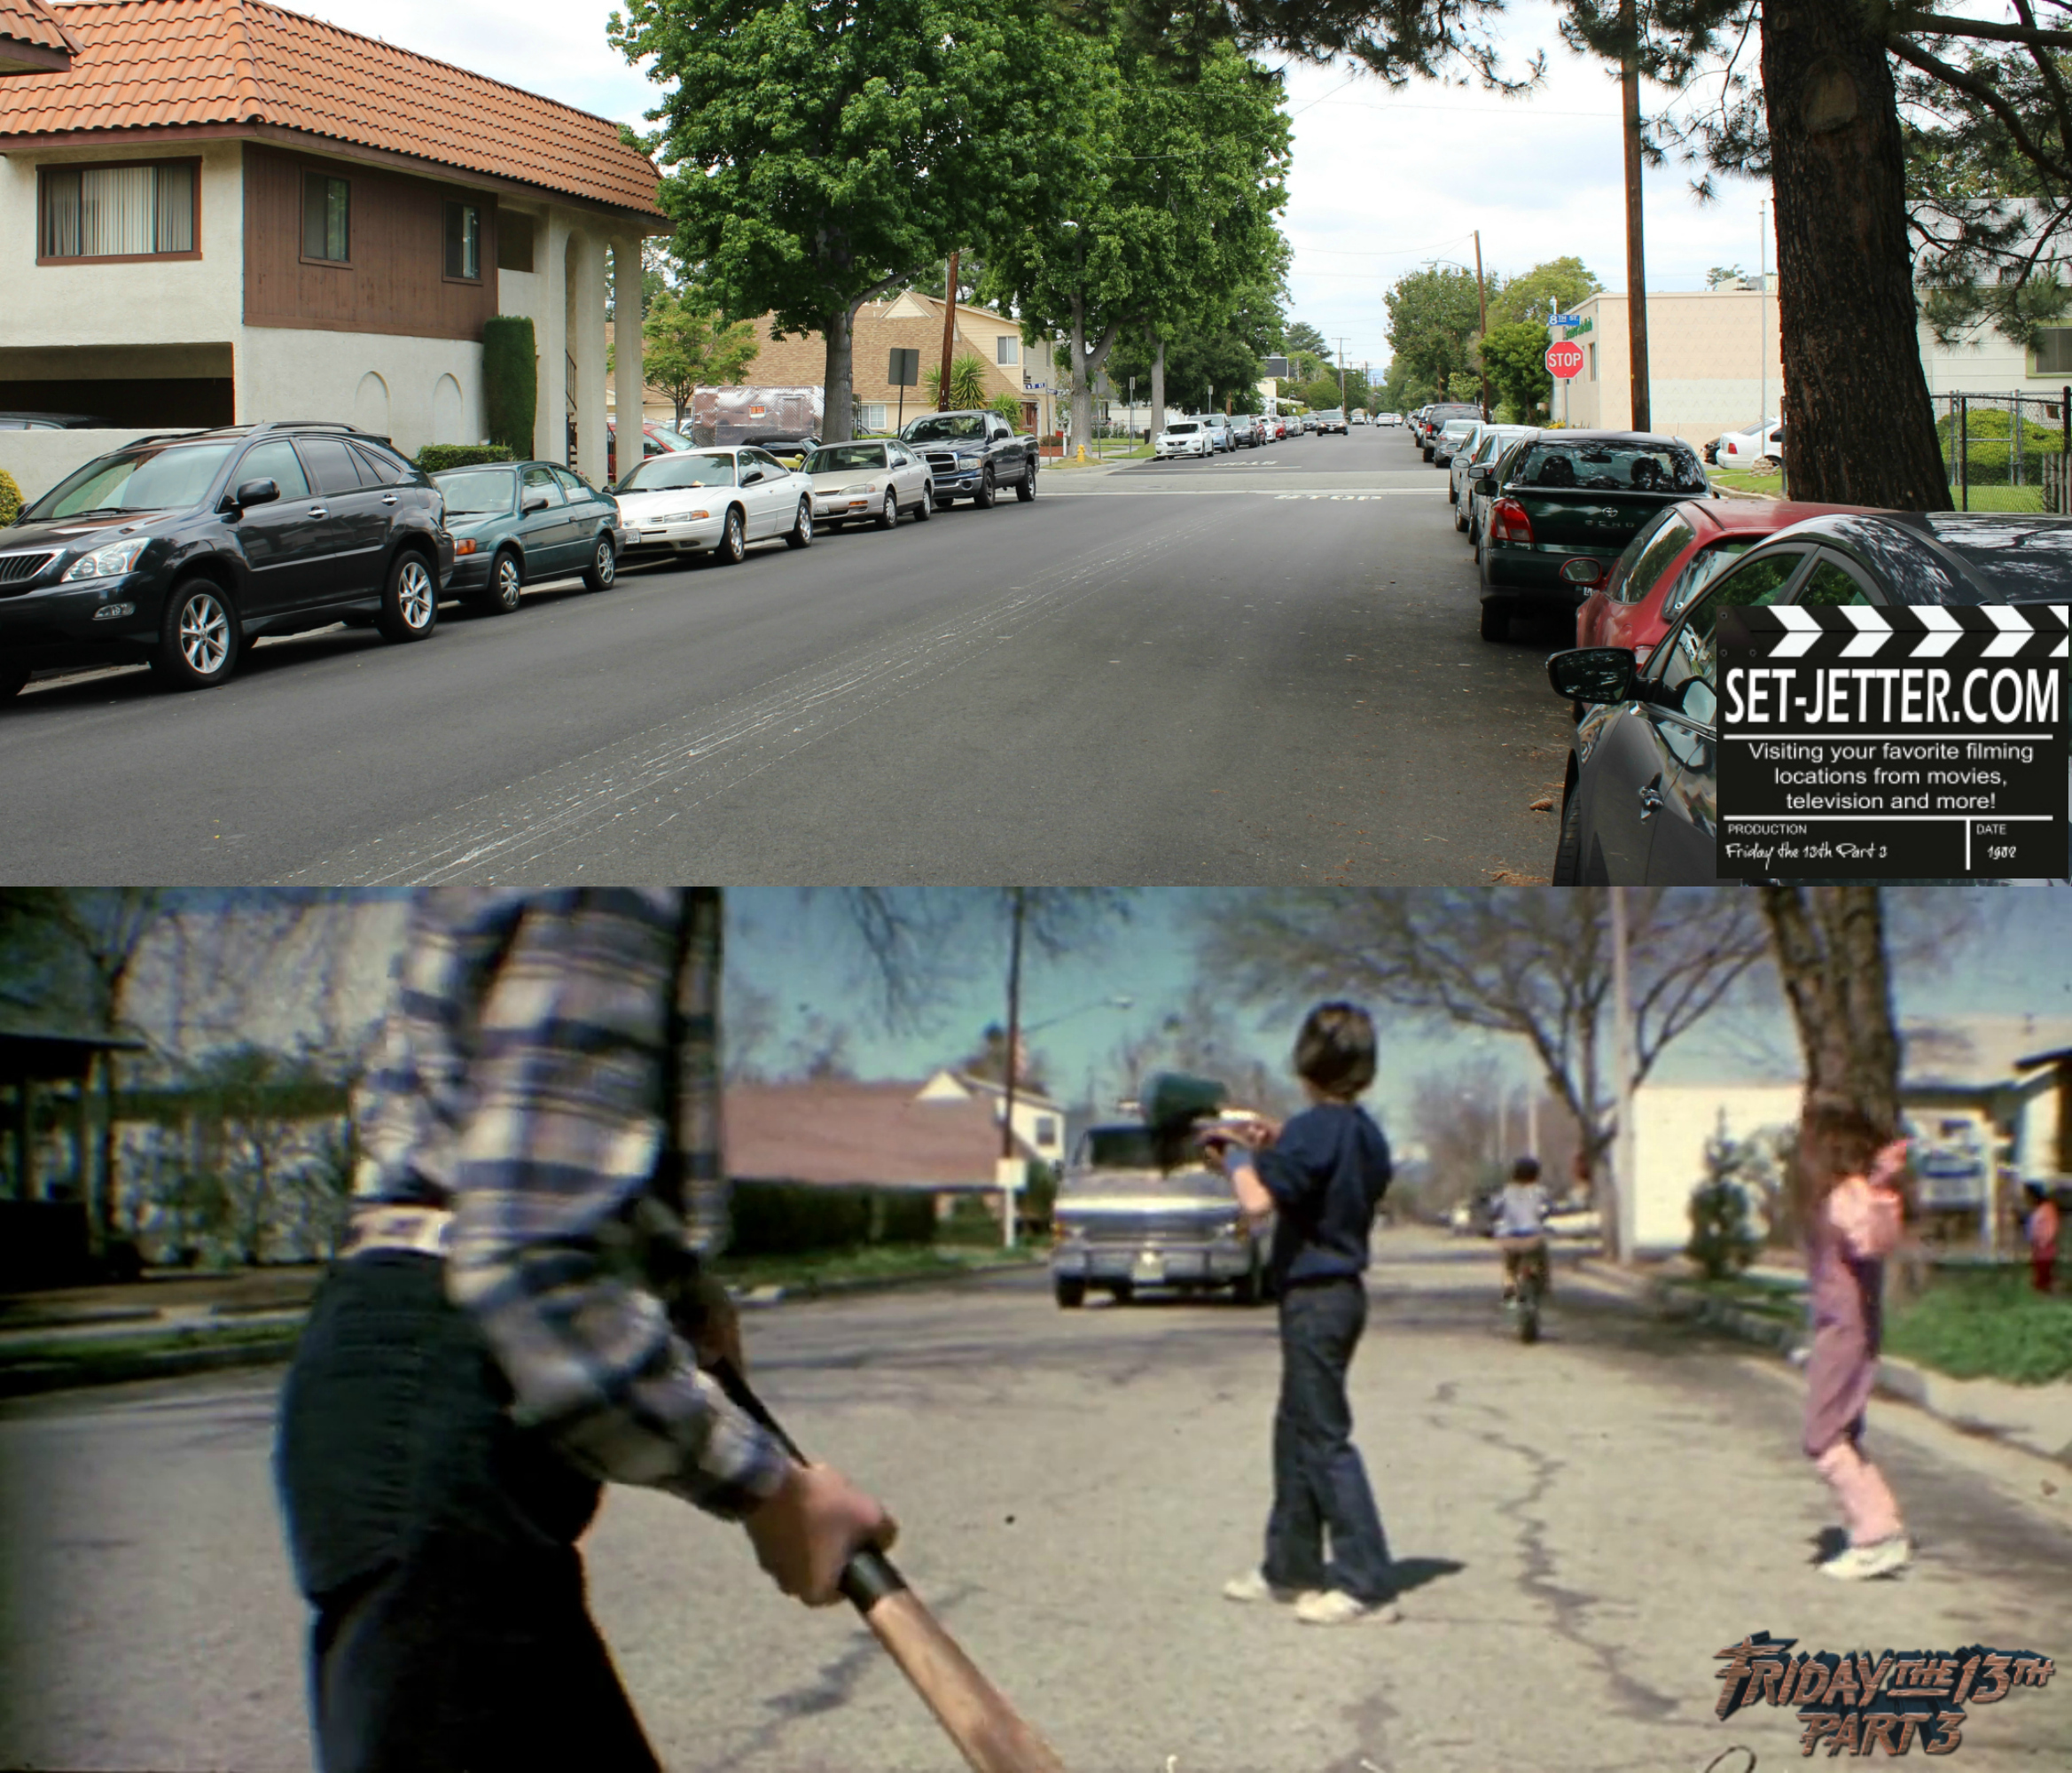 Friday the 13th Part 3 comparison 03.jpg